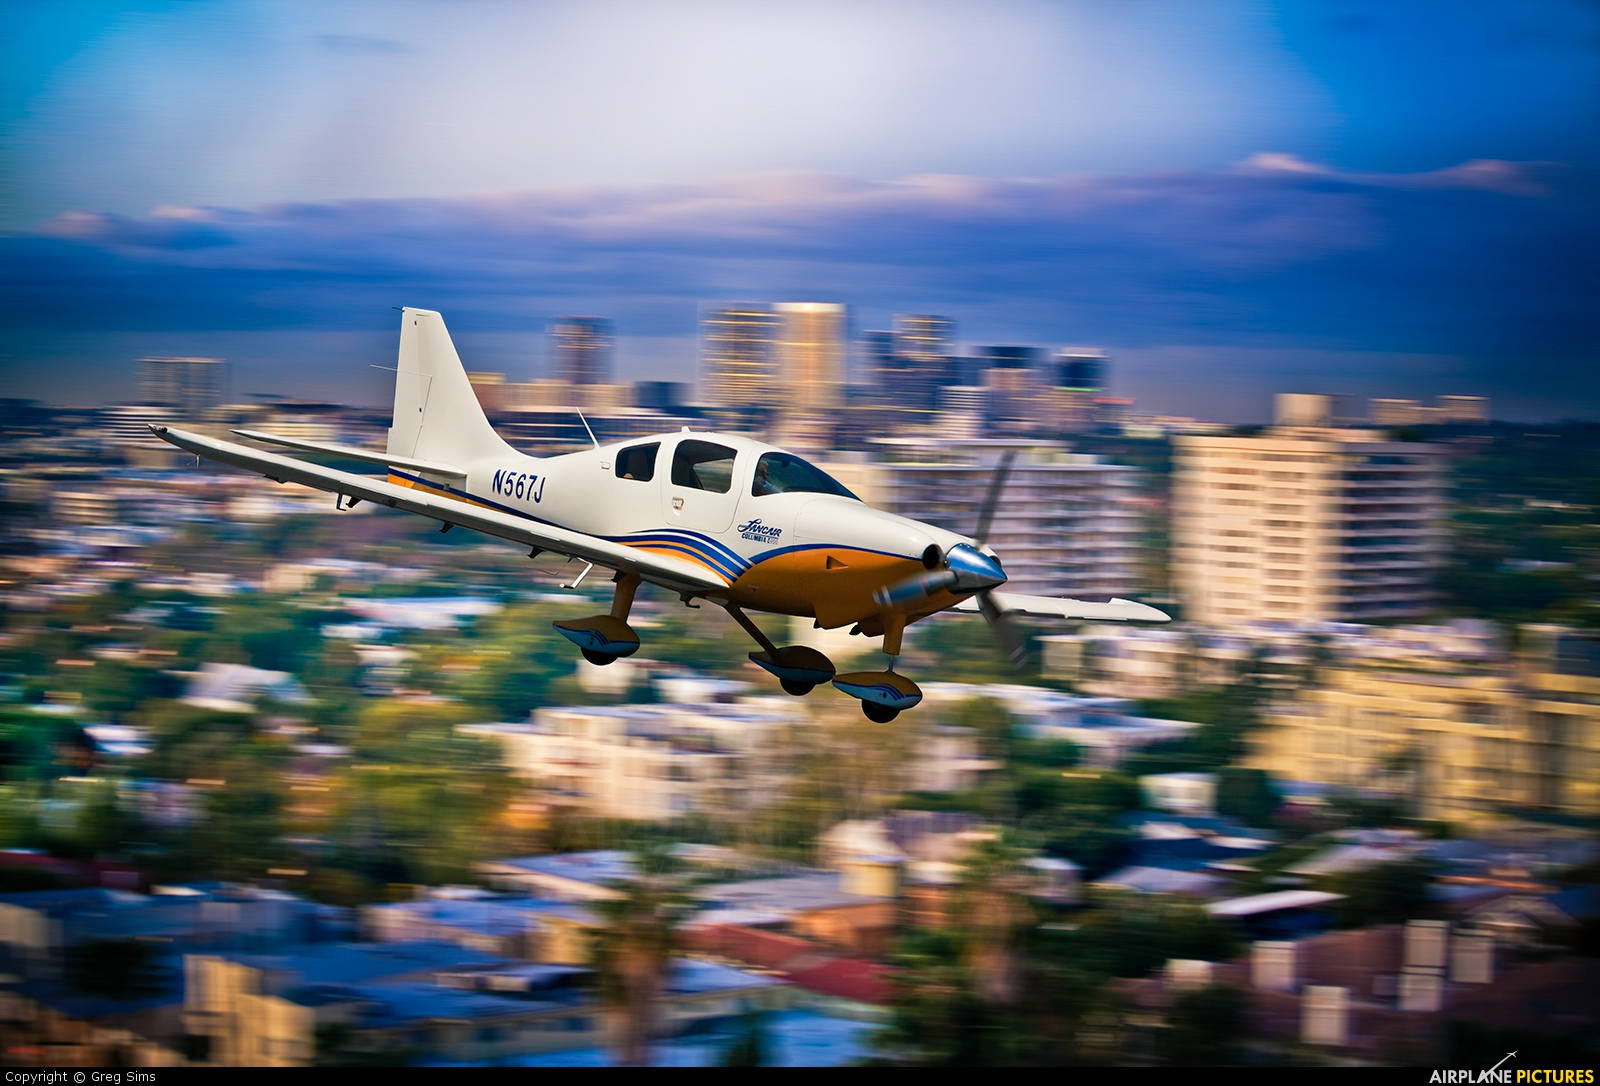 Private - aircraft at In Flight - California